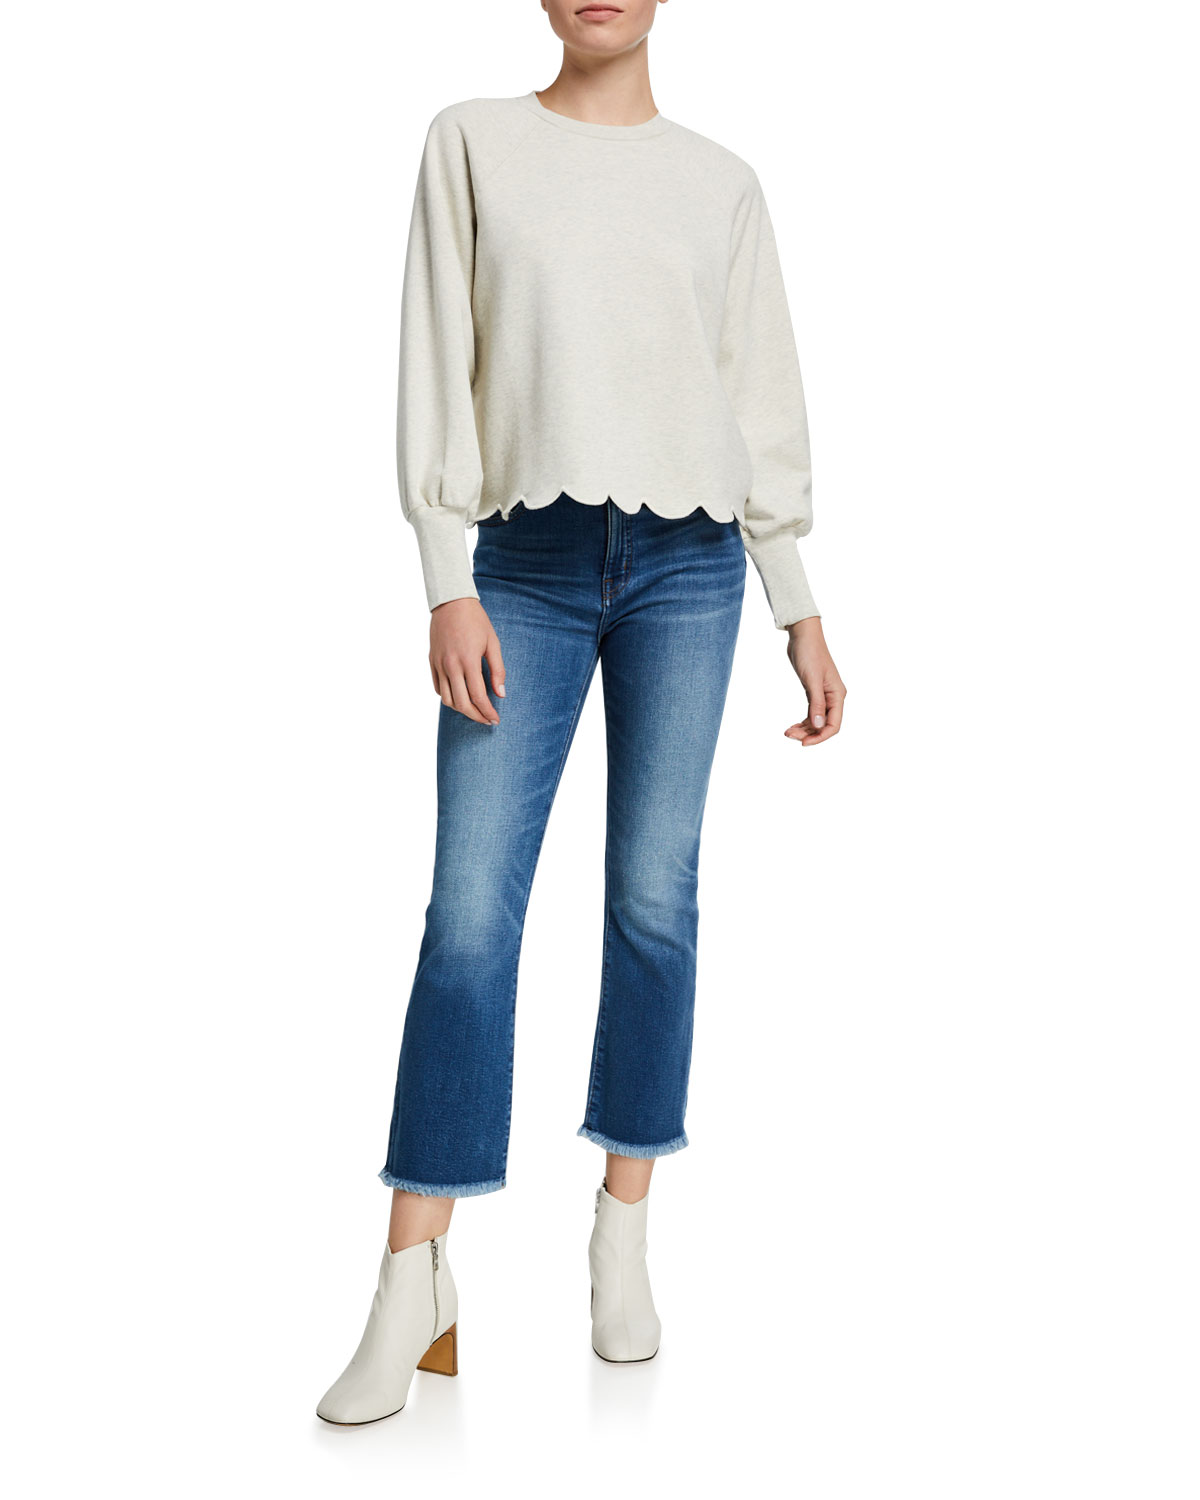 Cropped Jeans, Now